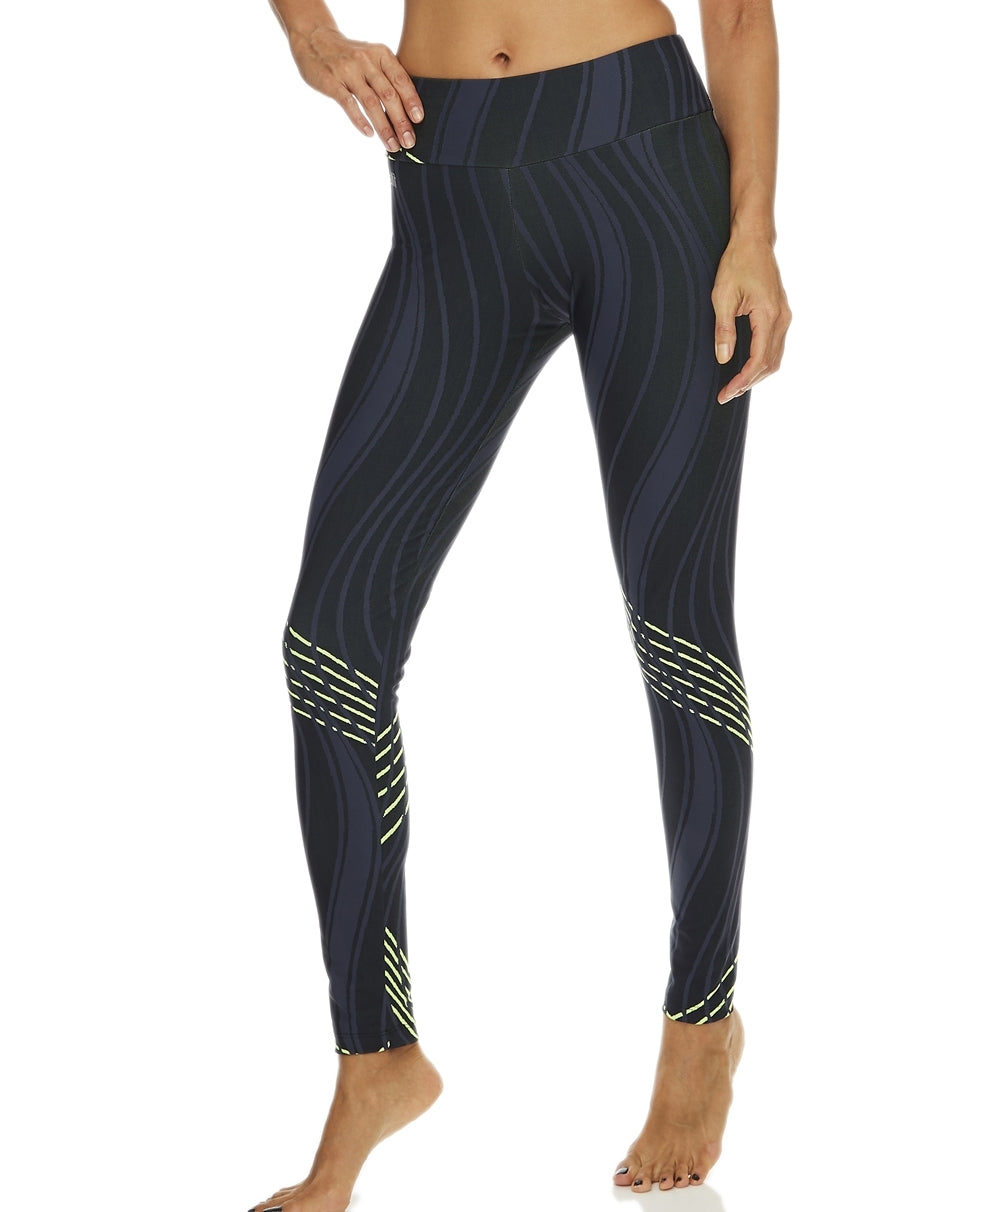 Cyprus Legging Full-Length